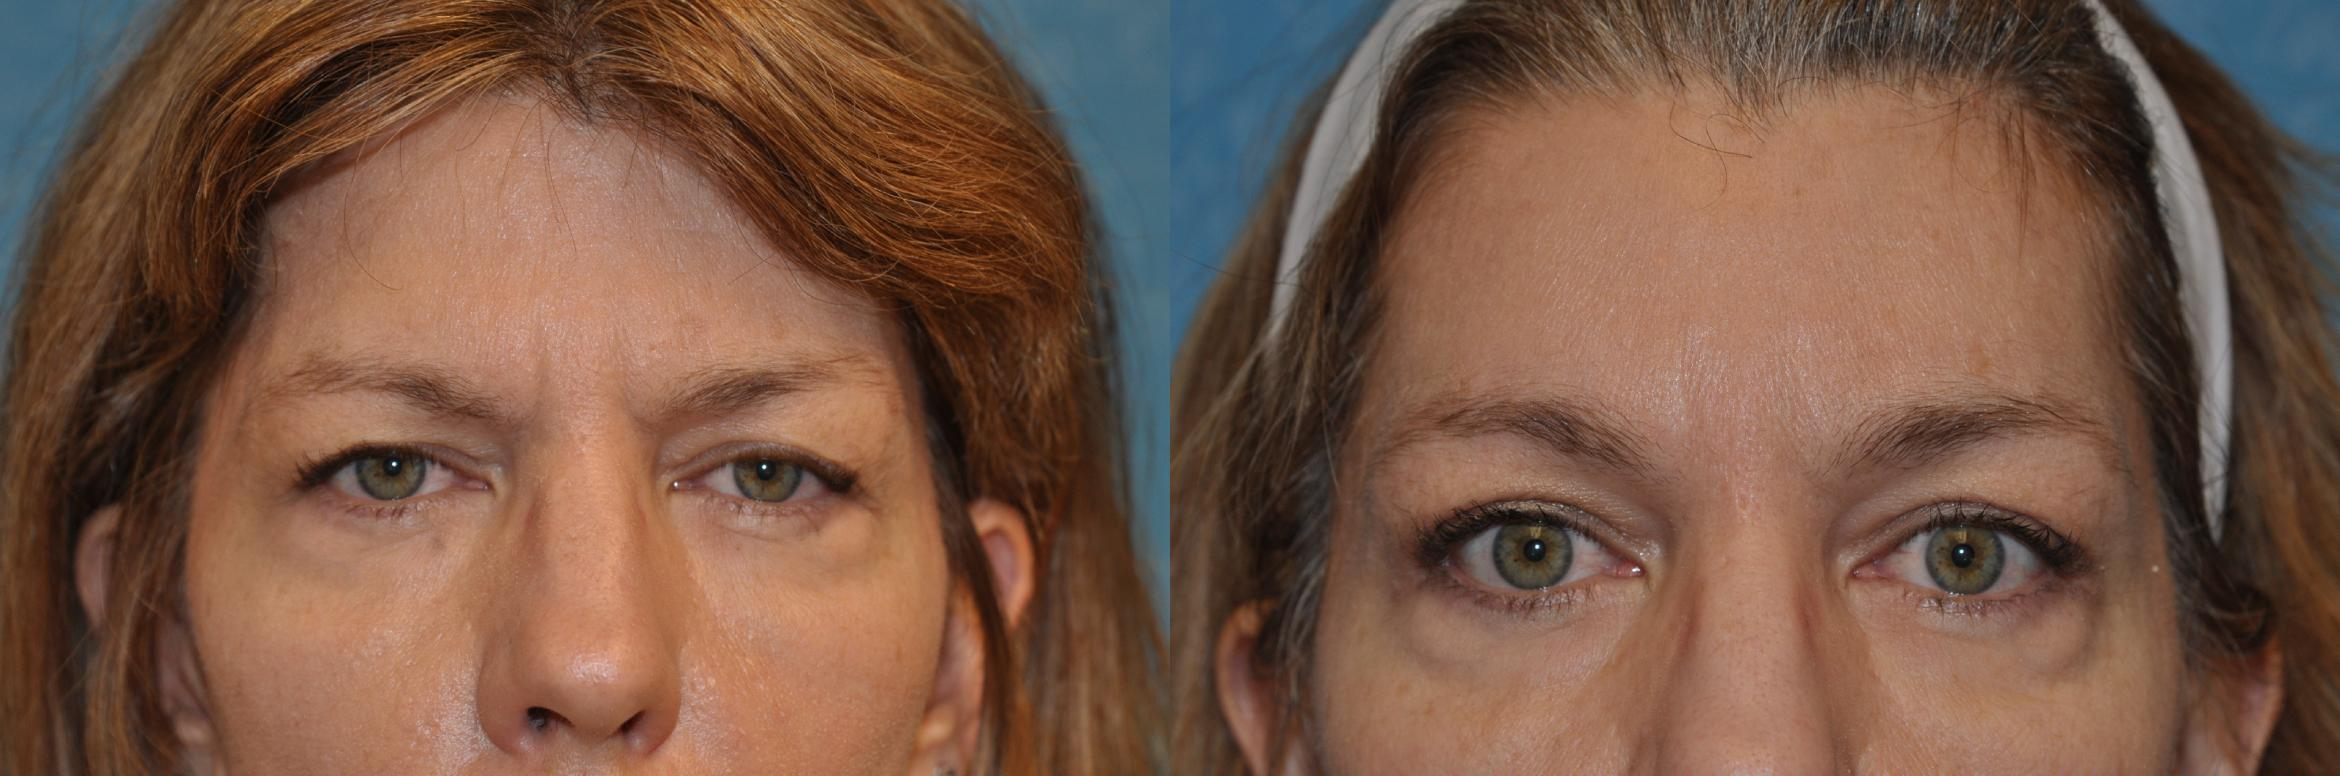 Brow Lift Before & After Photo | Toledo, Ohio | Dr. Craig Colville